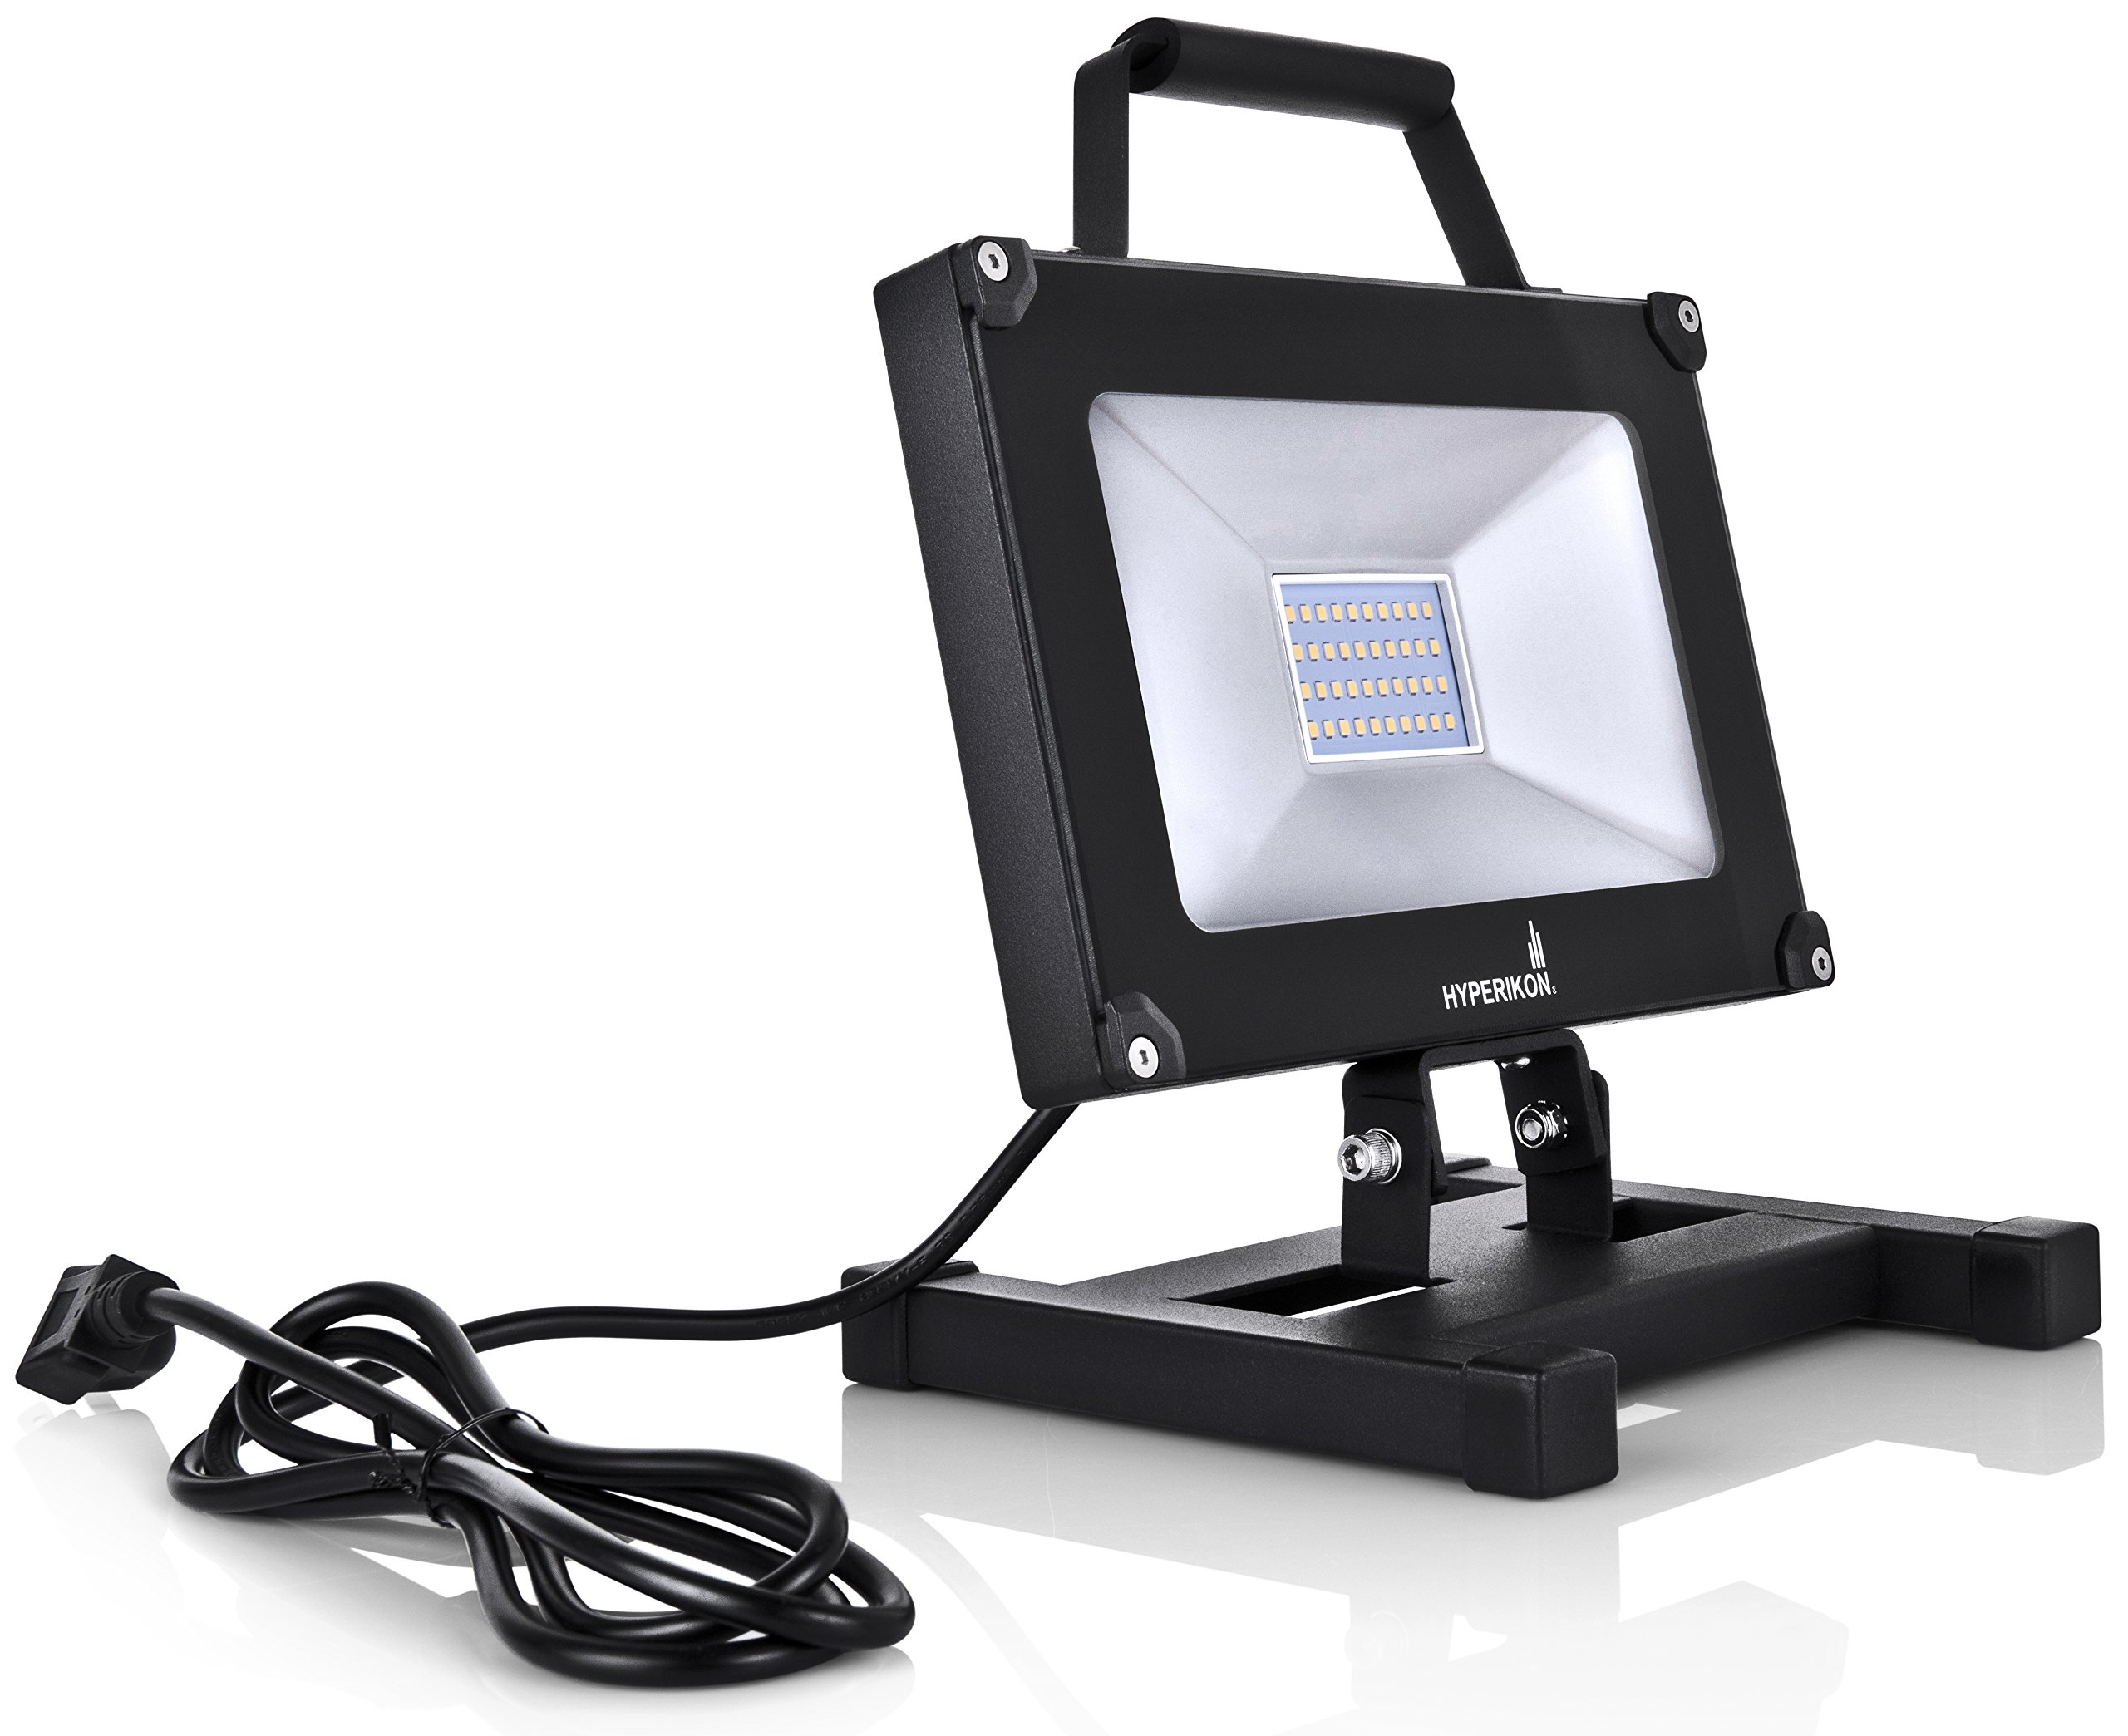 Hyperikon 30W LED Work Light Portable Fixture 5000K, Adjustable light with Plug and Stand for outdoor, garage, construction, UL, IP65 Waterproof, 100-277V